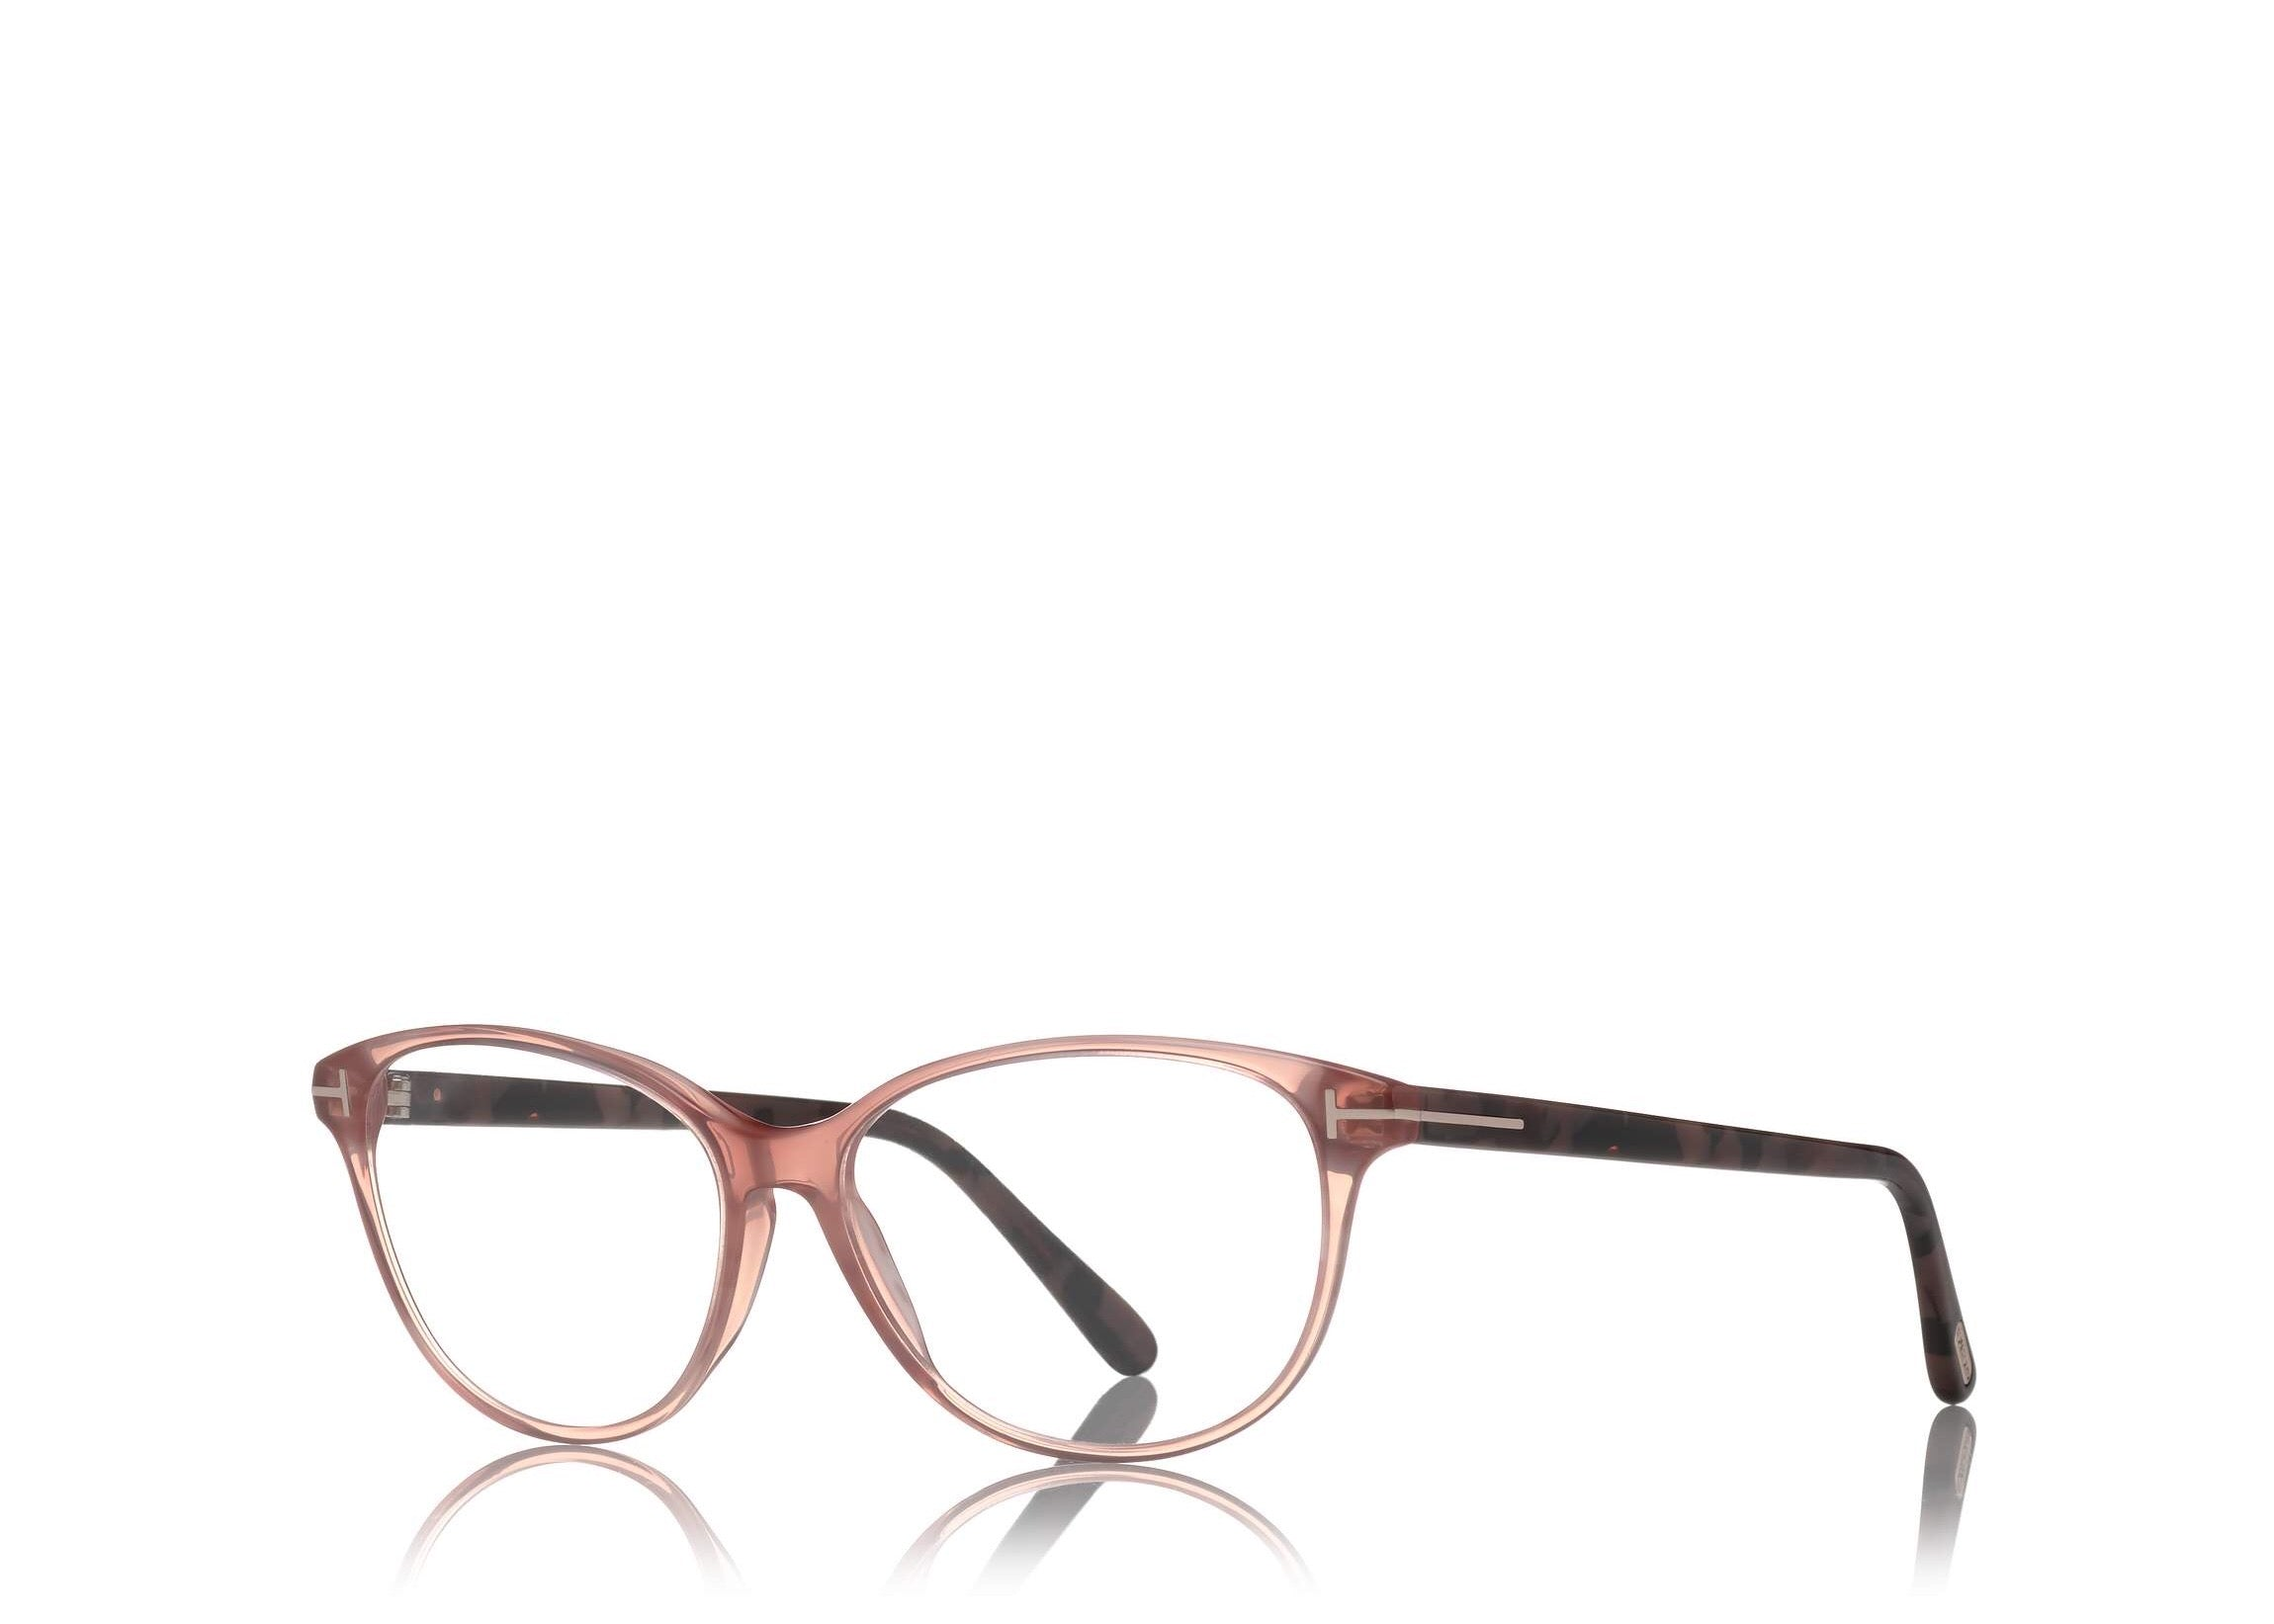 7d8920f72c TOM FORD FT 5421 PINK CAT EYE-FRAME OPTICAL GLASSES - Seattle ...